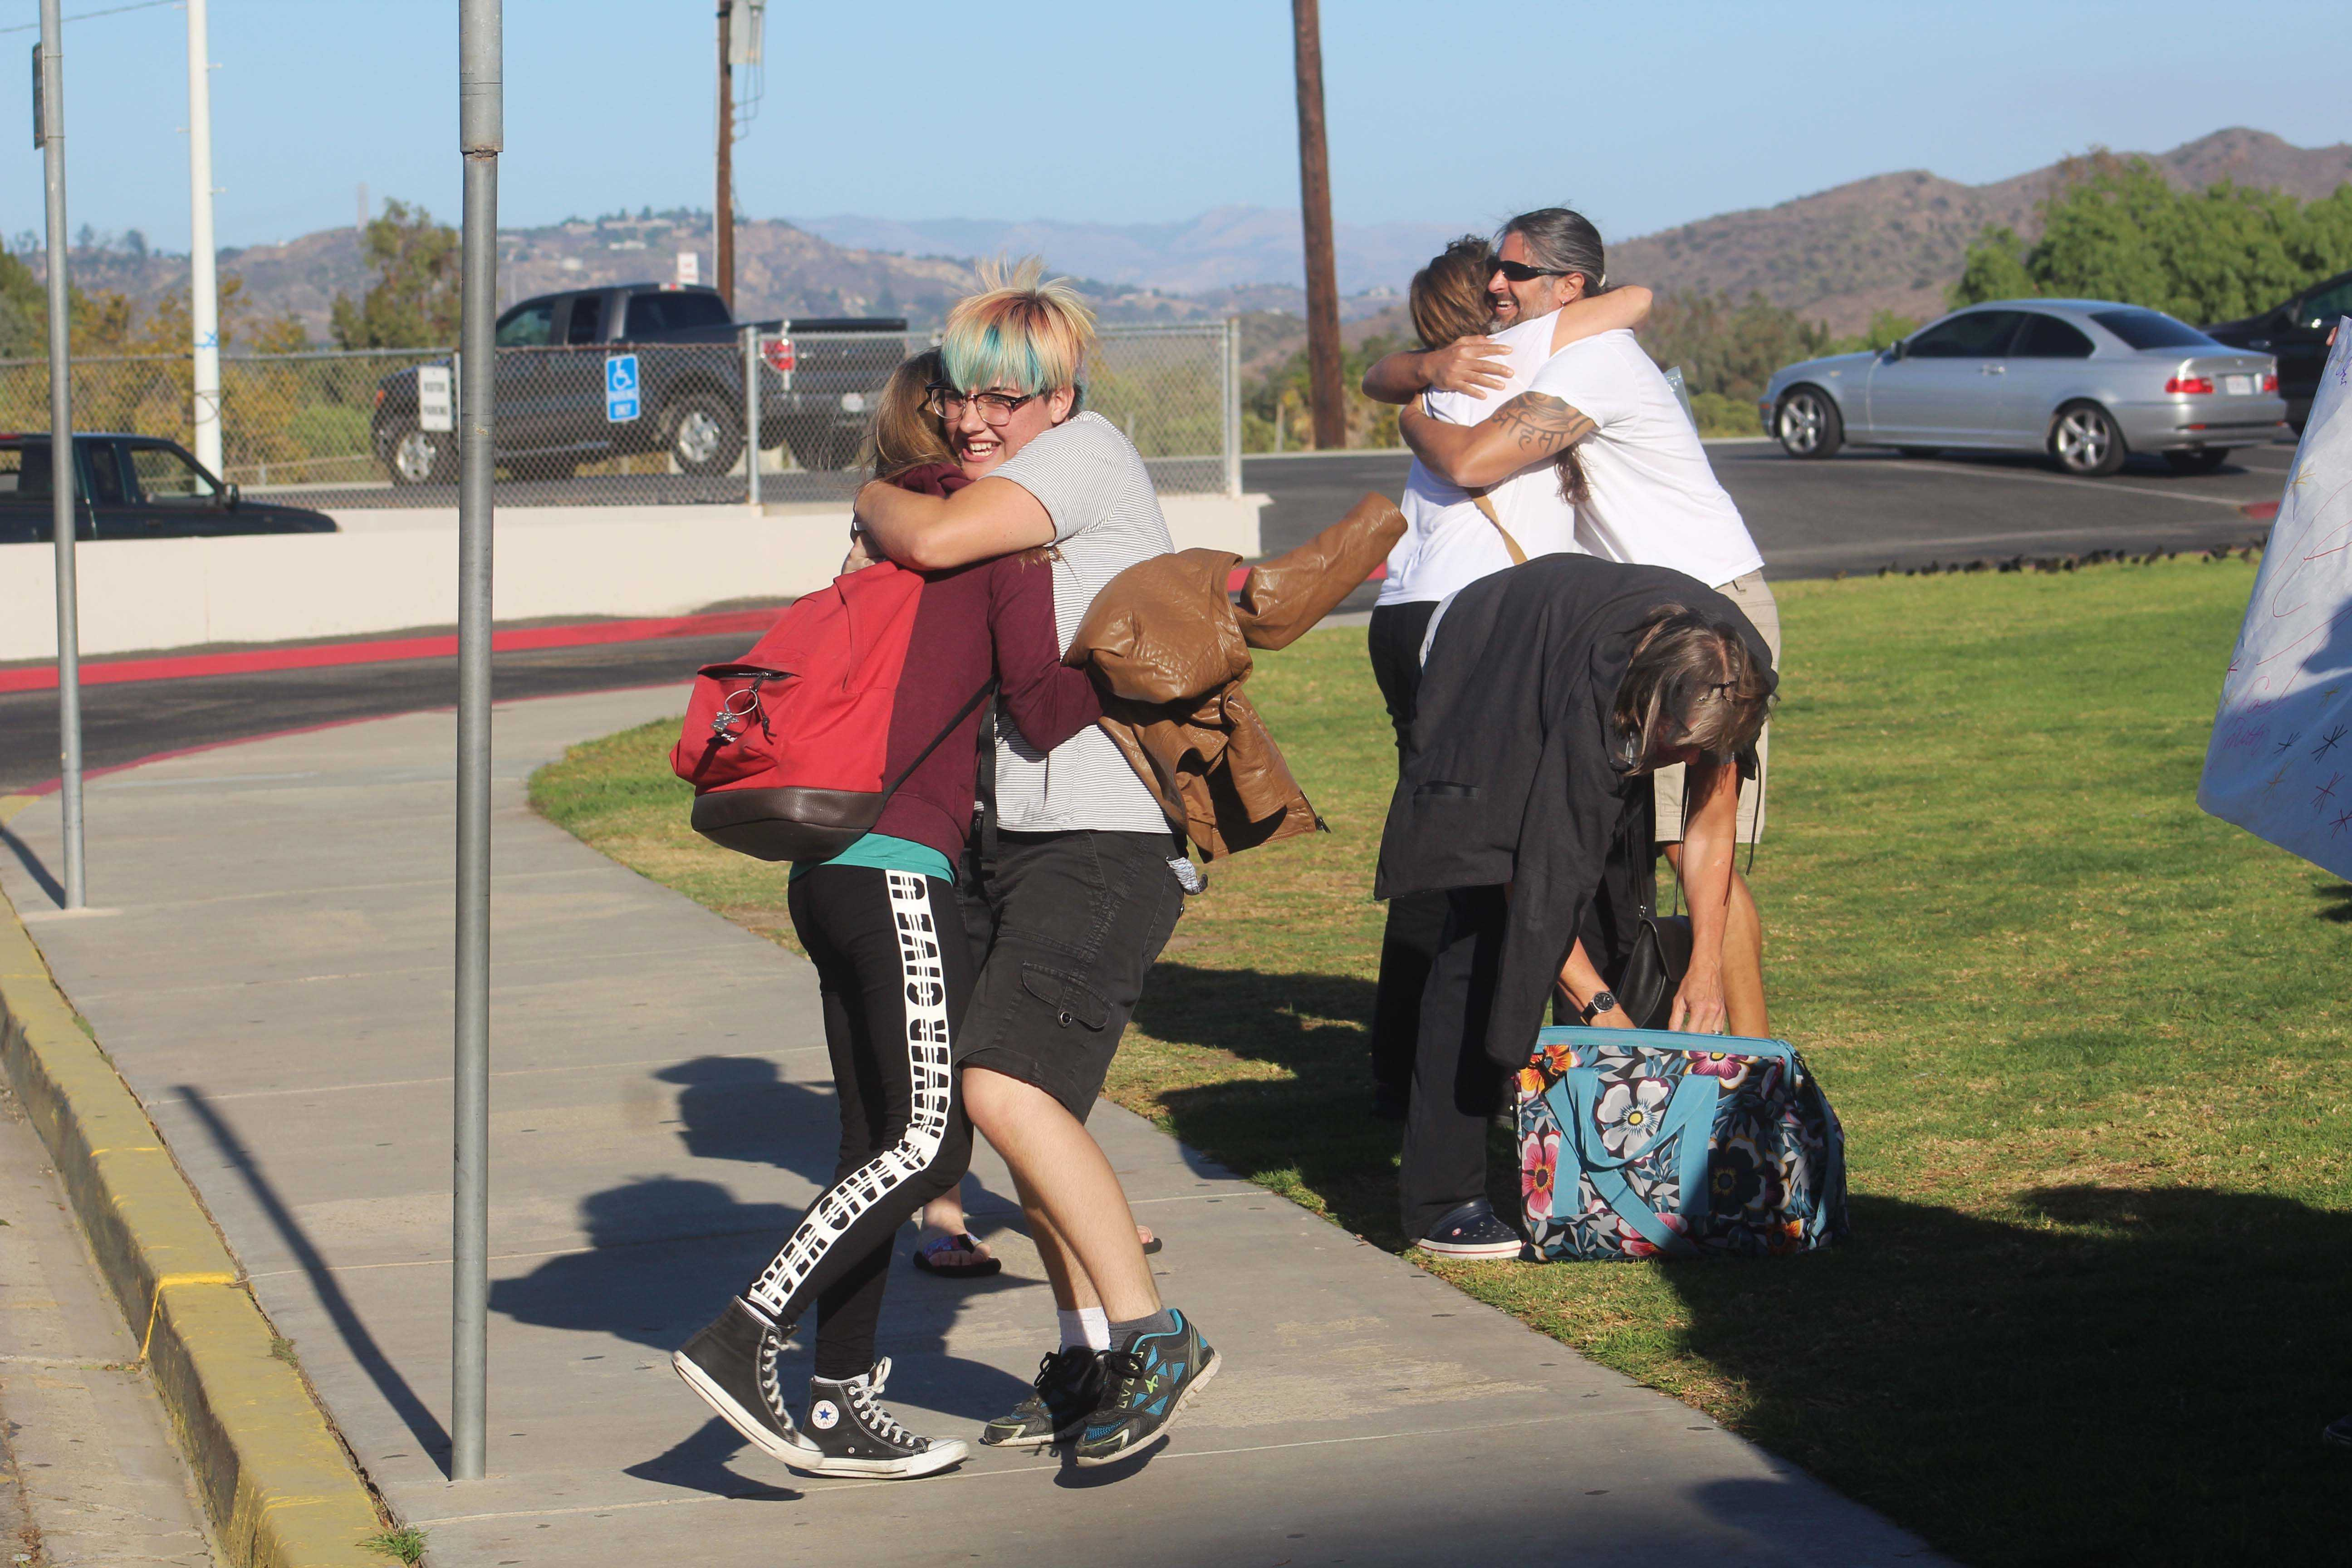 Maddi Boulais, senior, hugs her German exchange partner, Lea Geißendörfer, for the first time in front of the high school. After six months of messaging online, they finally met.